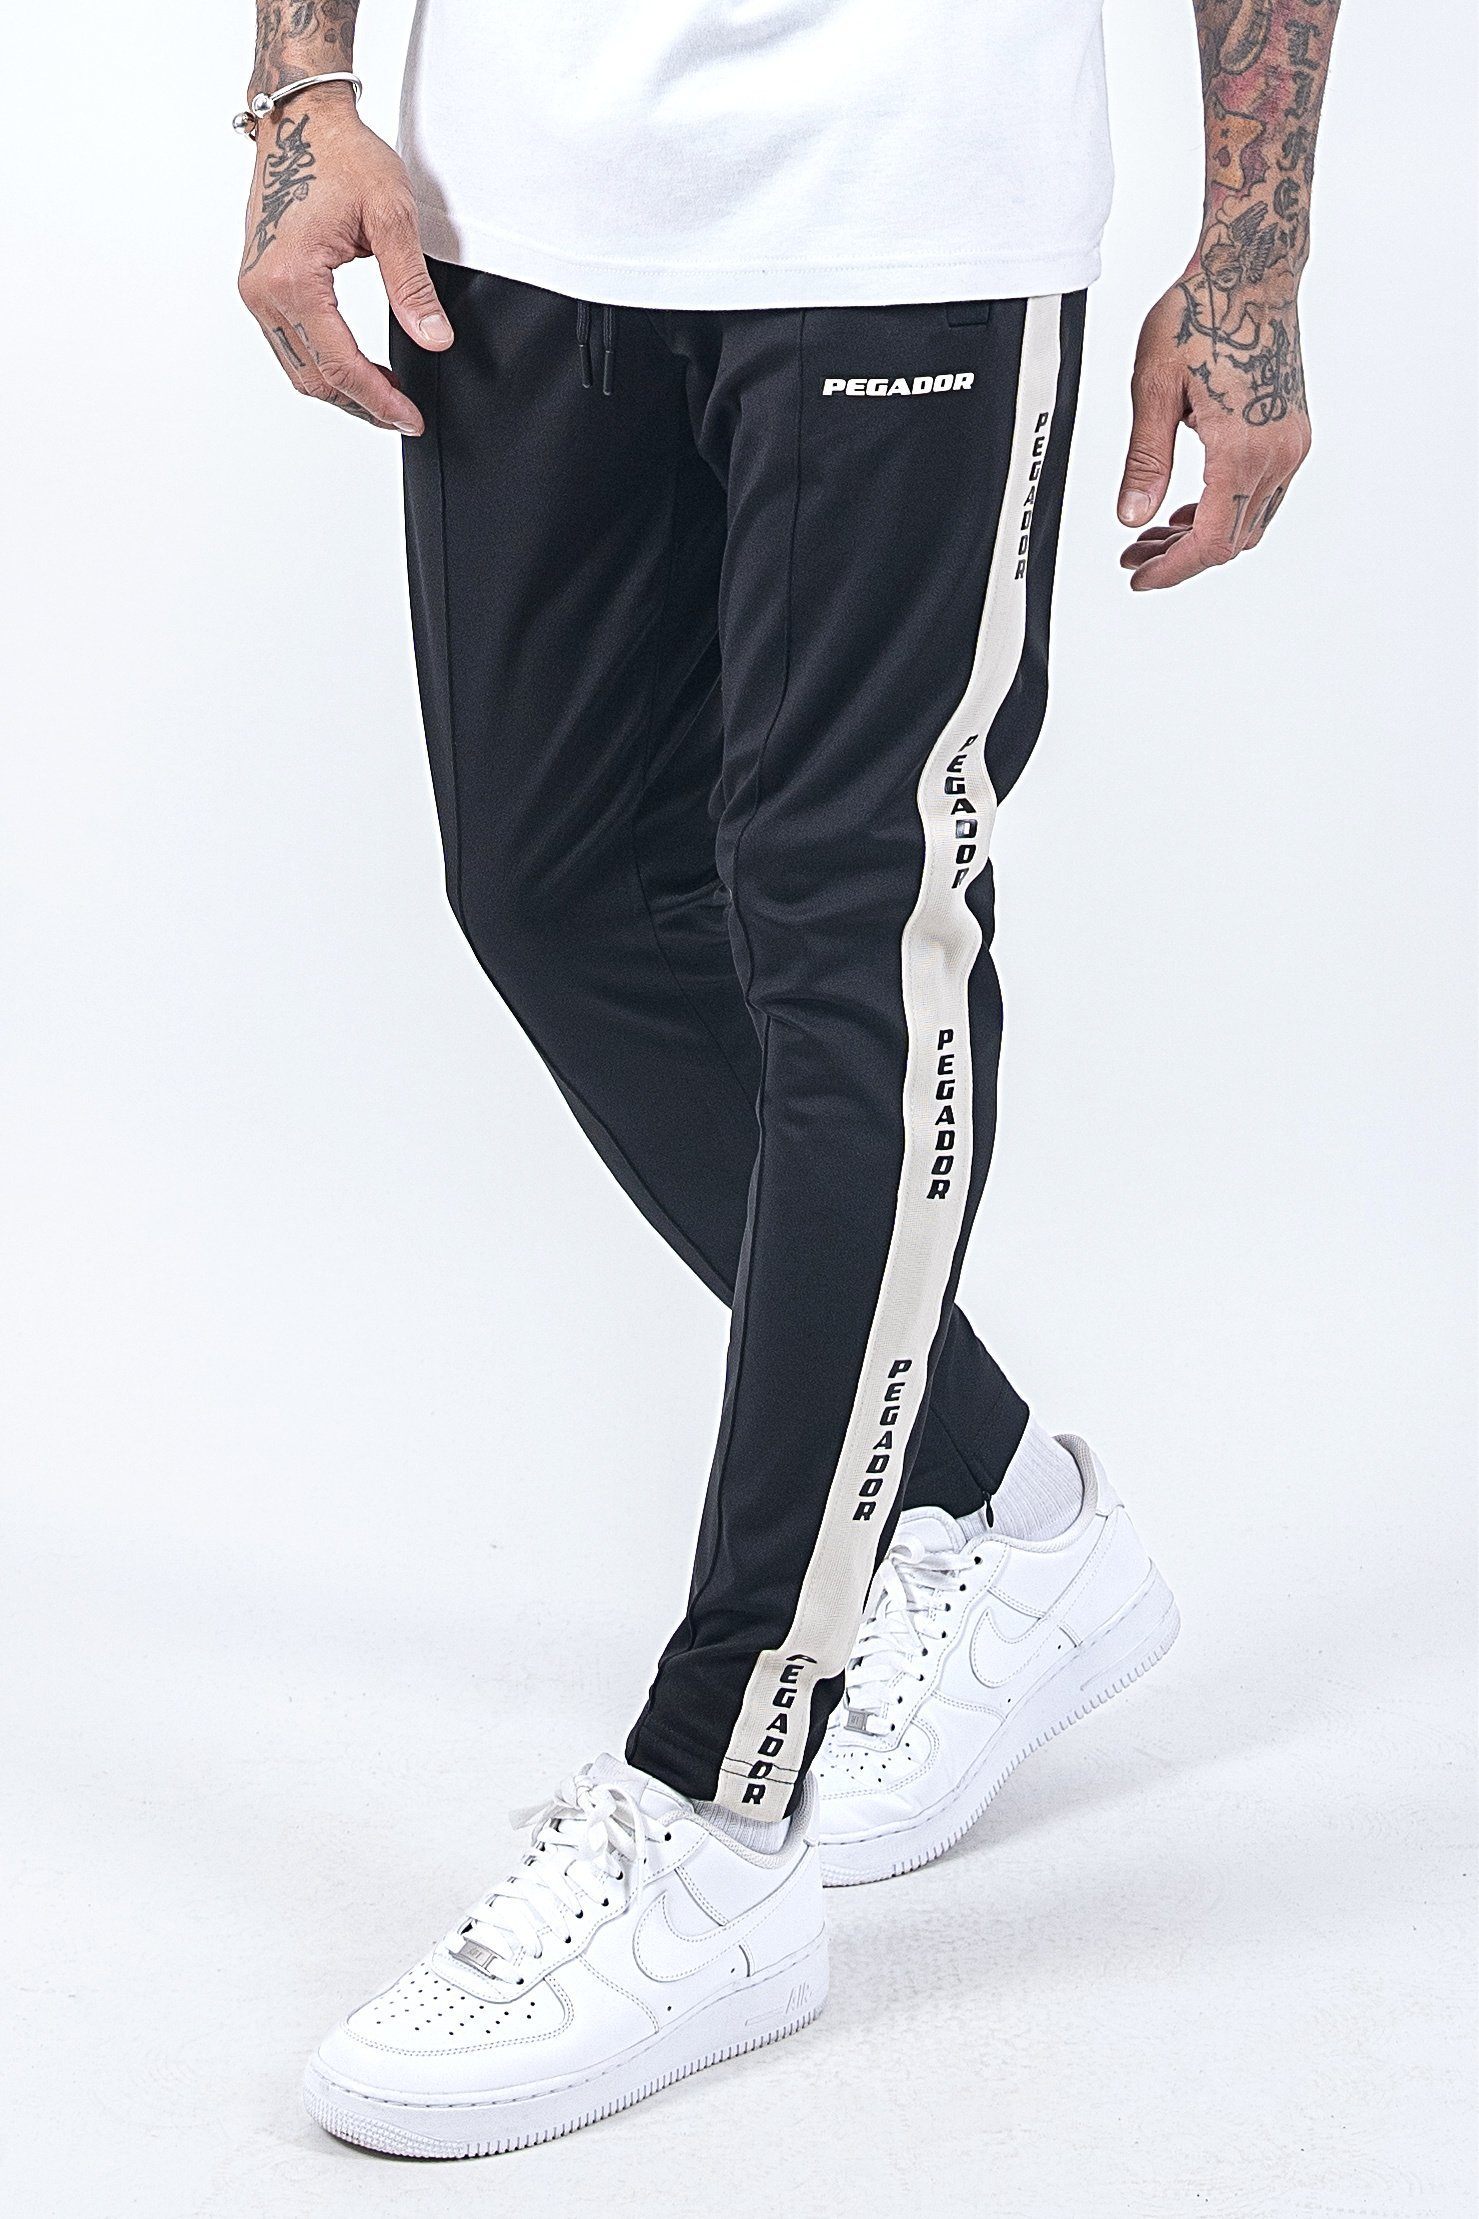 Cabal Logo Jogger Black - PEGADOR - Dominate the Hype